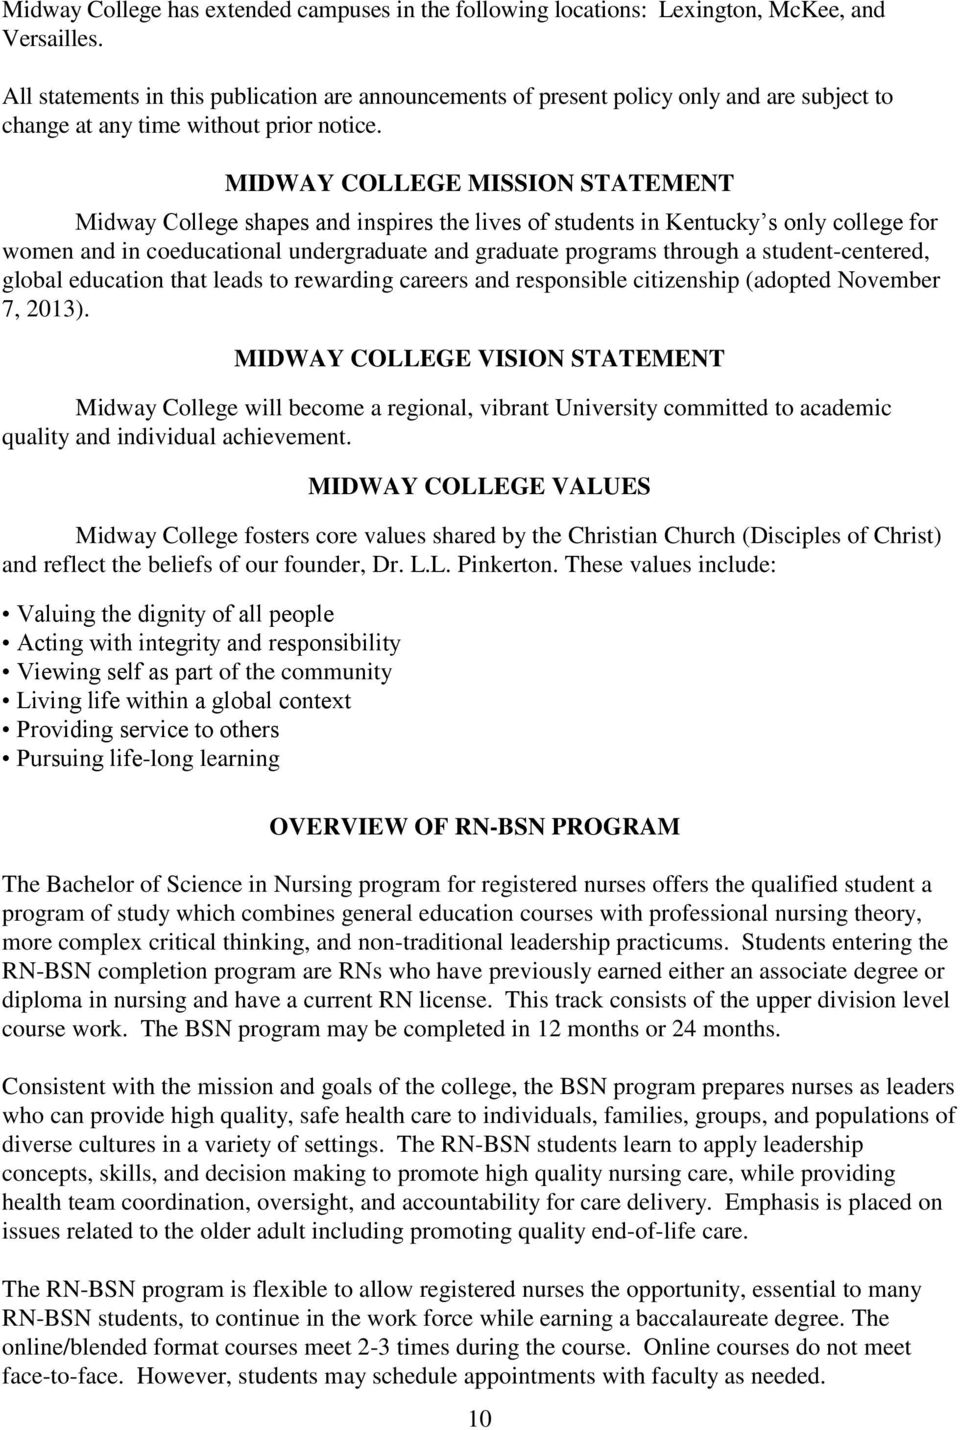 MIDWAY COLLEGE MISSION STATEMENT Midway College shapes and inspires the lives of students in Kentucky s only college for women and in coeducational undergraduate and graduate programs through a